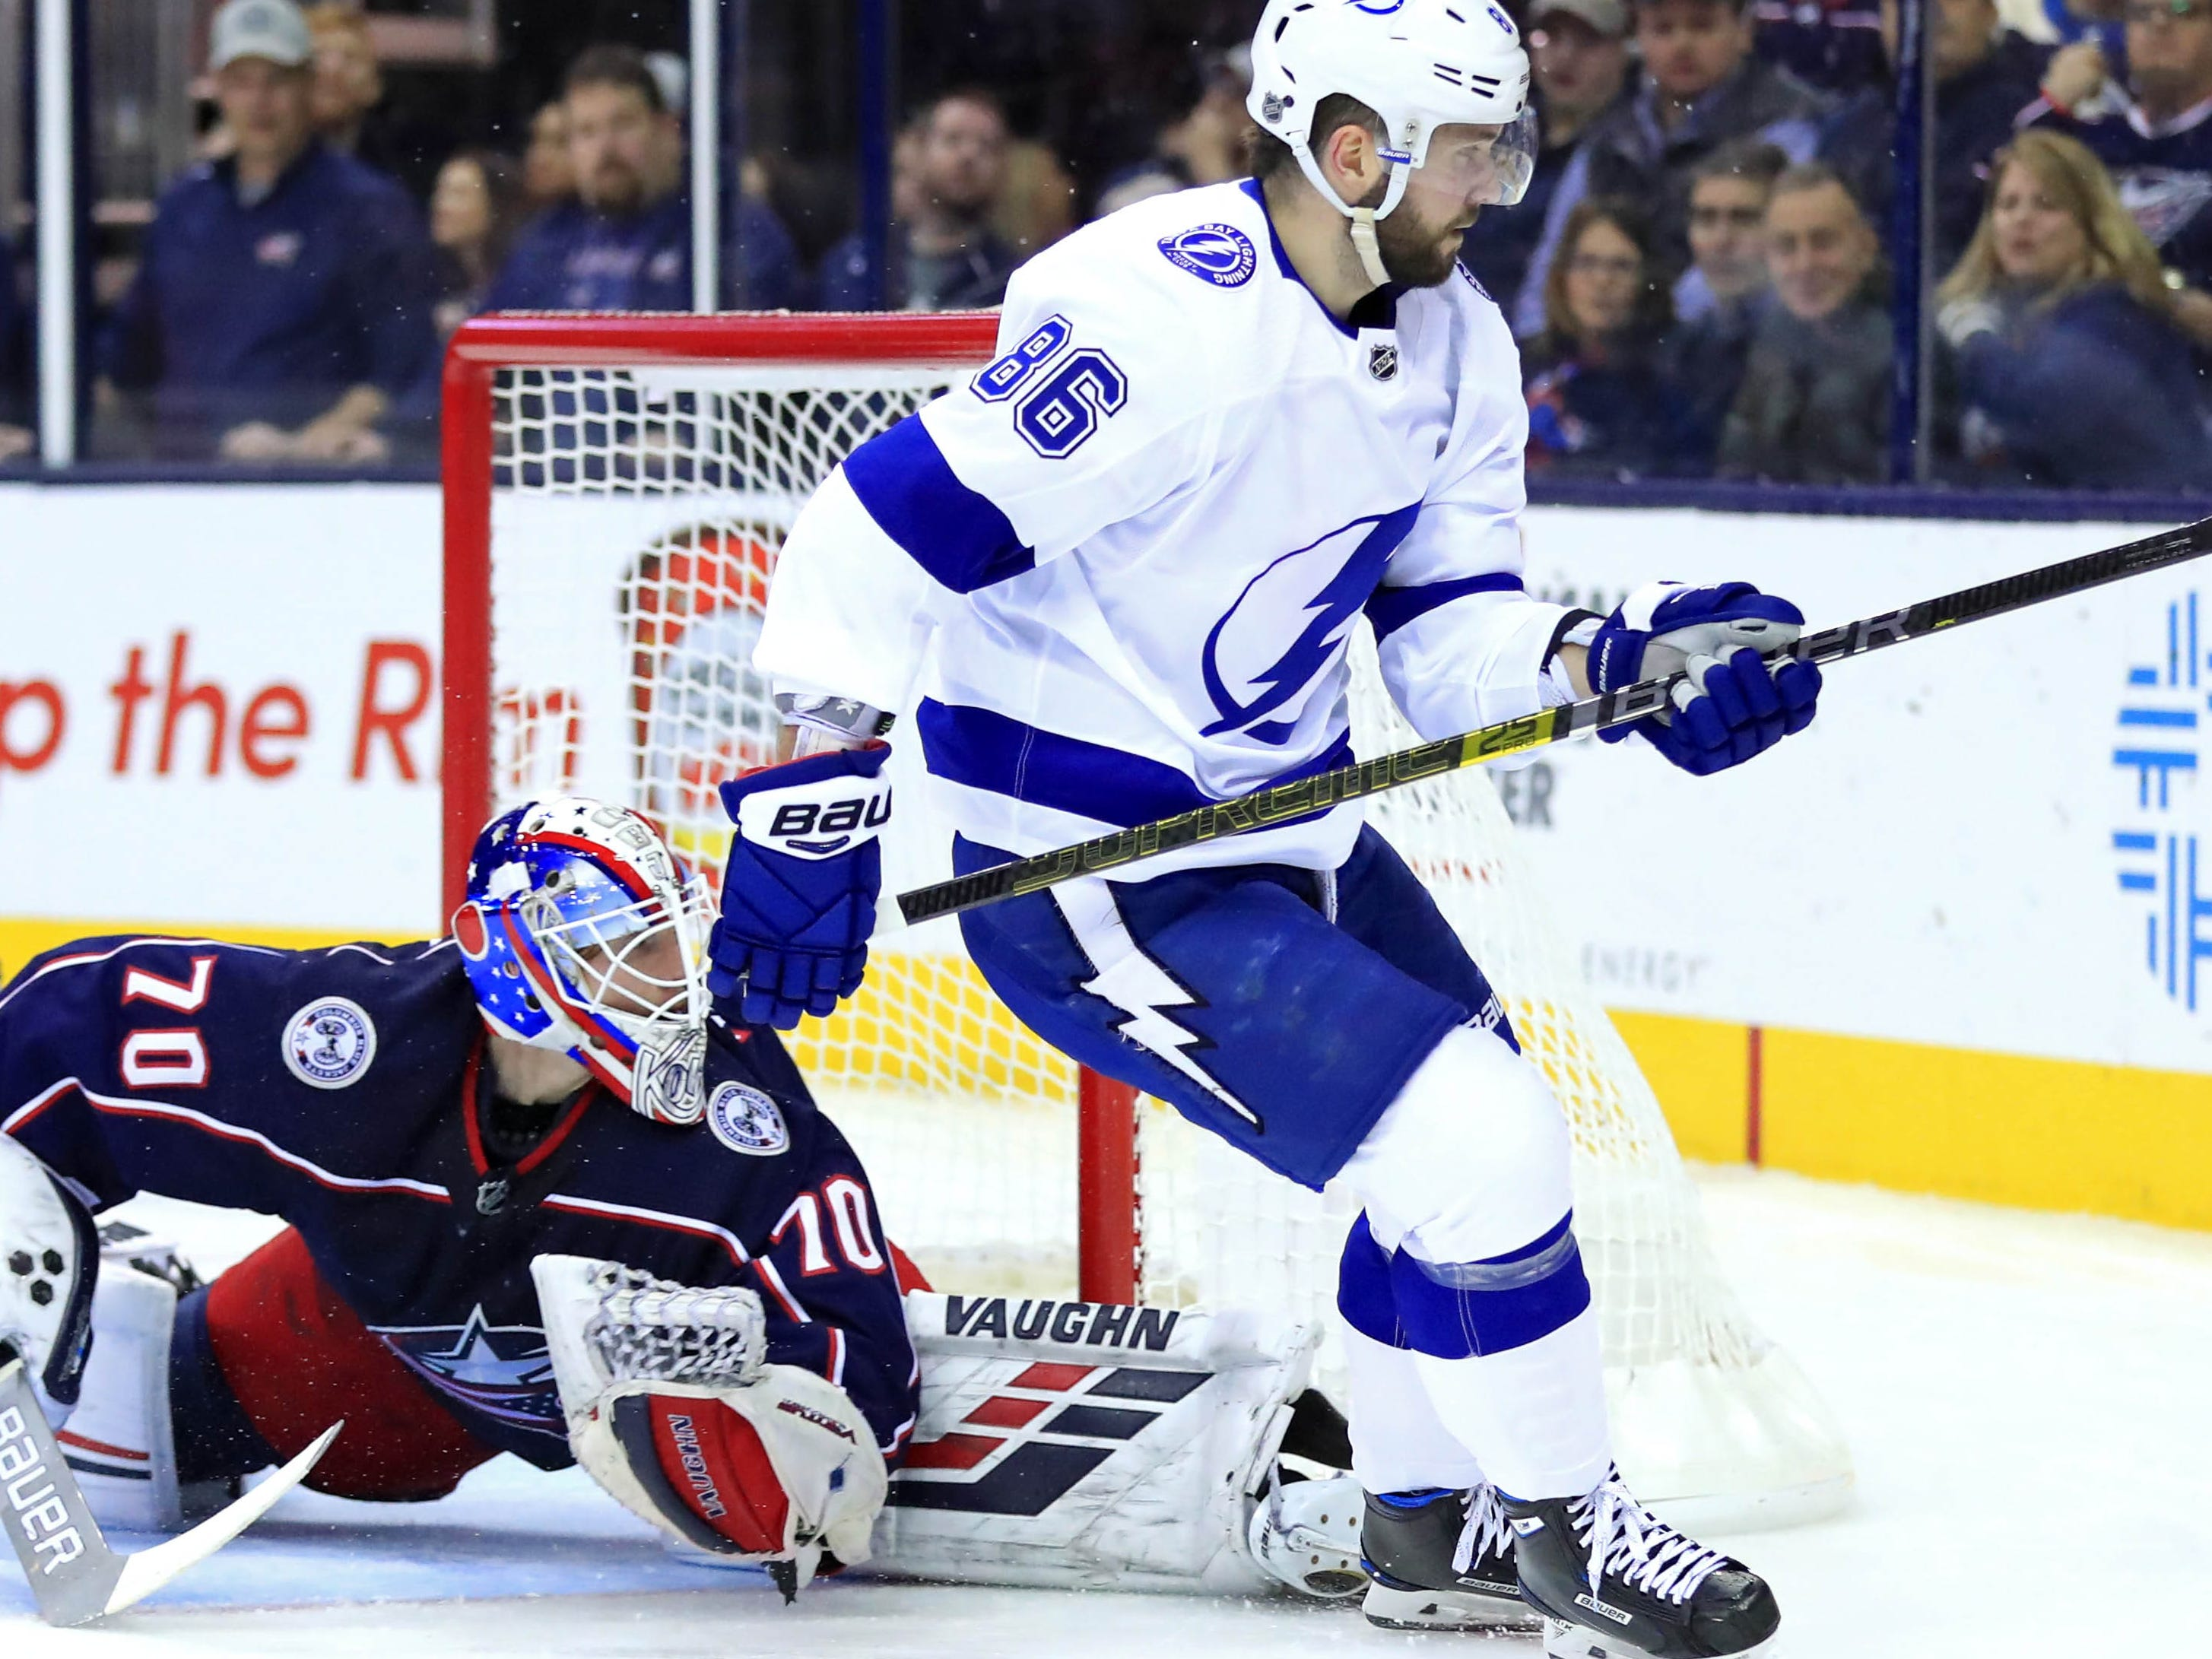 Feb. 18: Tampa Bay Lightning right wing Nikita Kucherov scores a goal against Columbus Blue Jackets goaltender Joonas Korpisalo in the first period at Nationwide Arena. He had five points to give him 99 points this season.